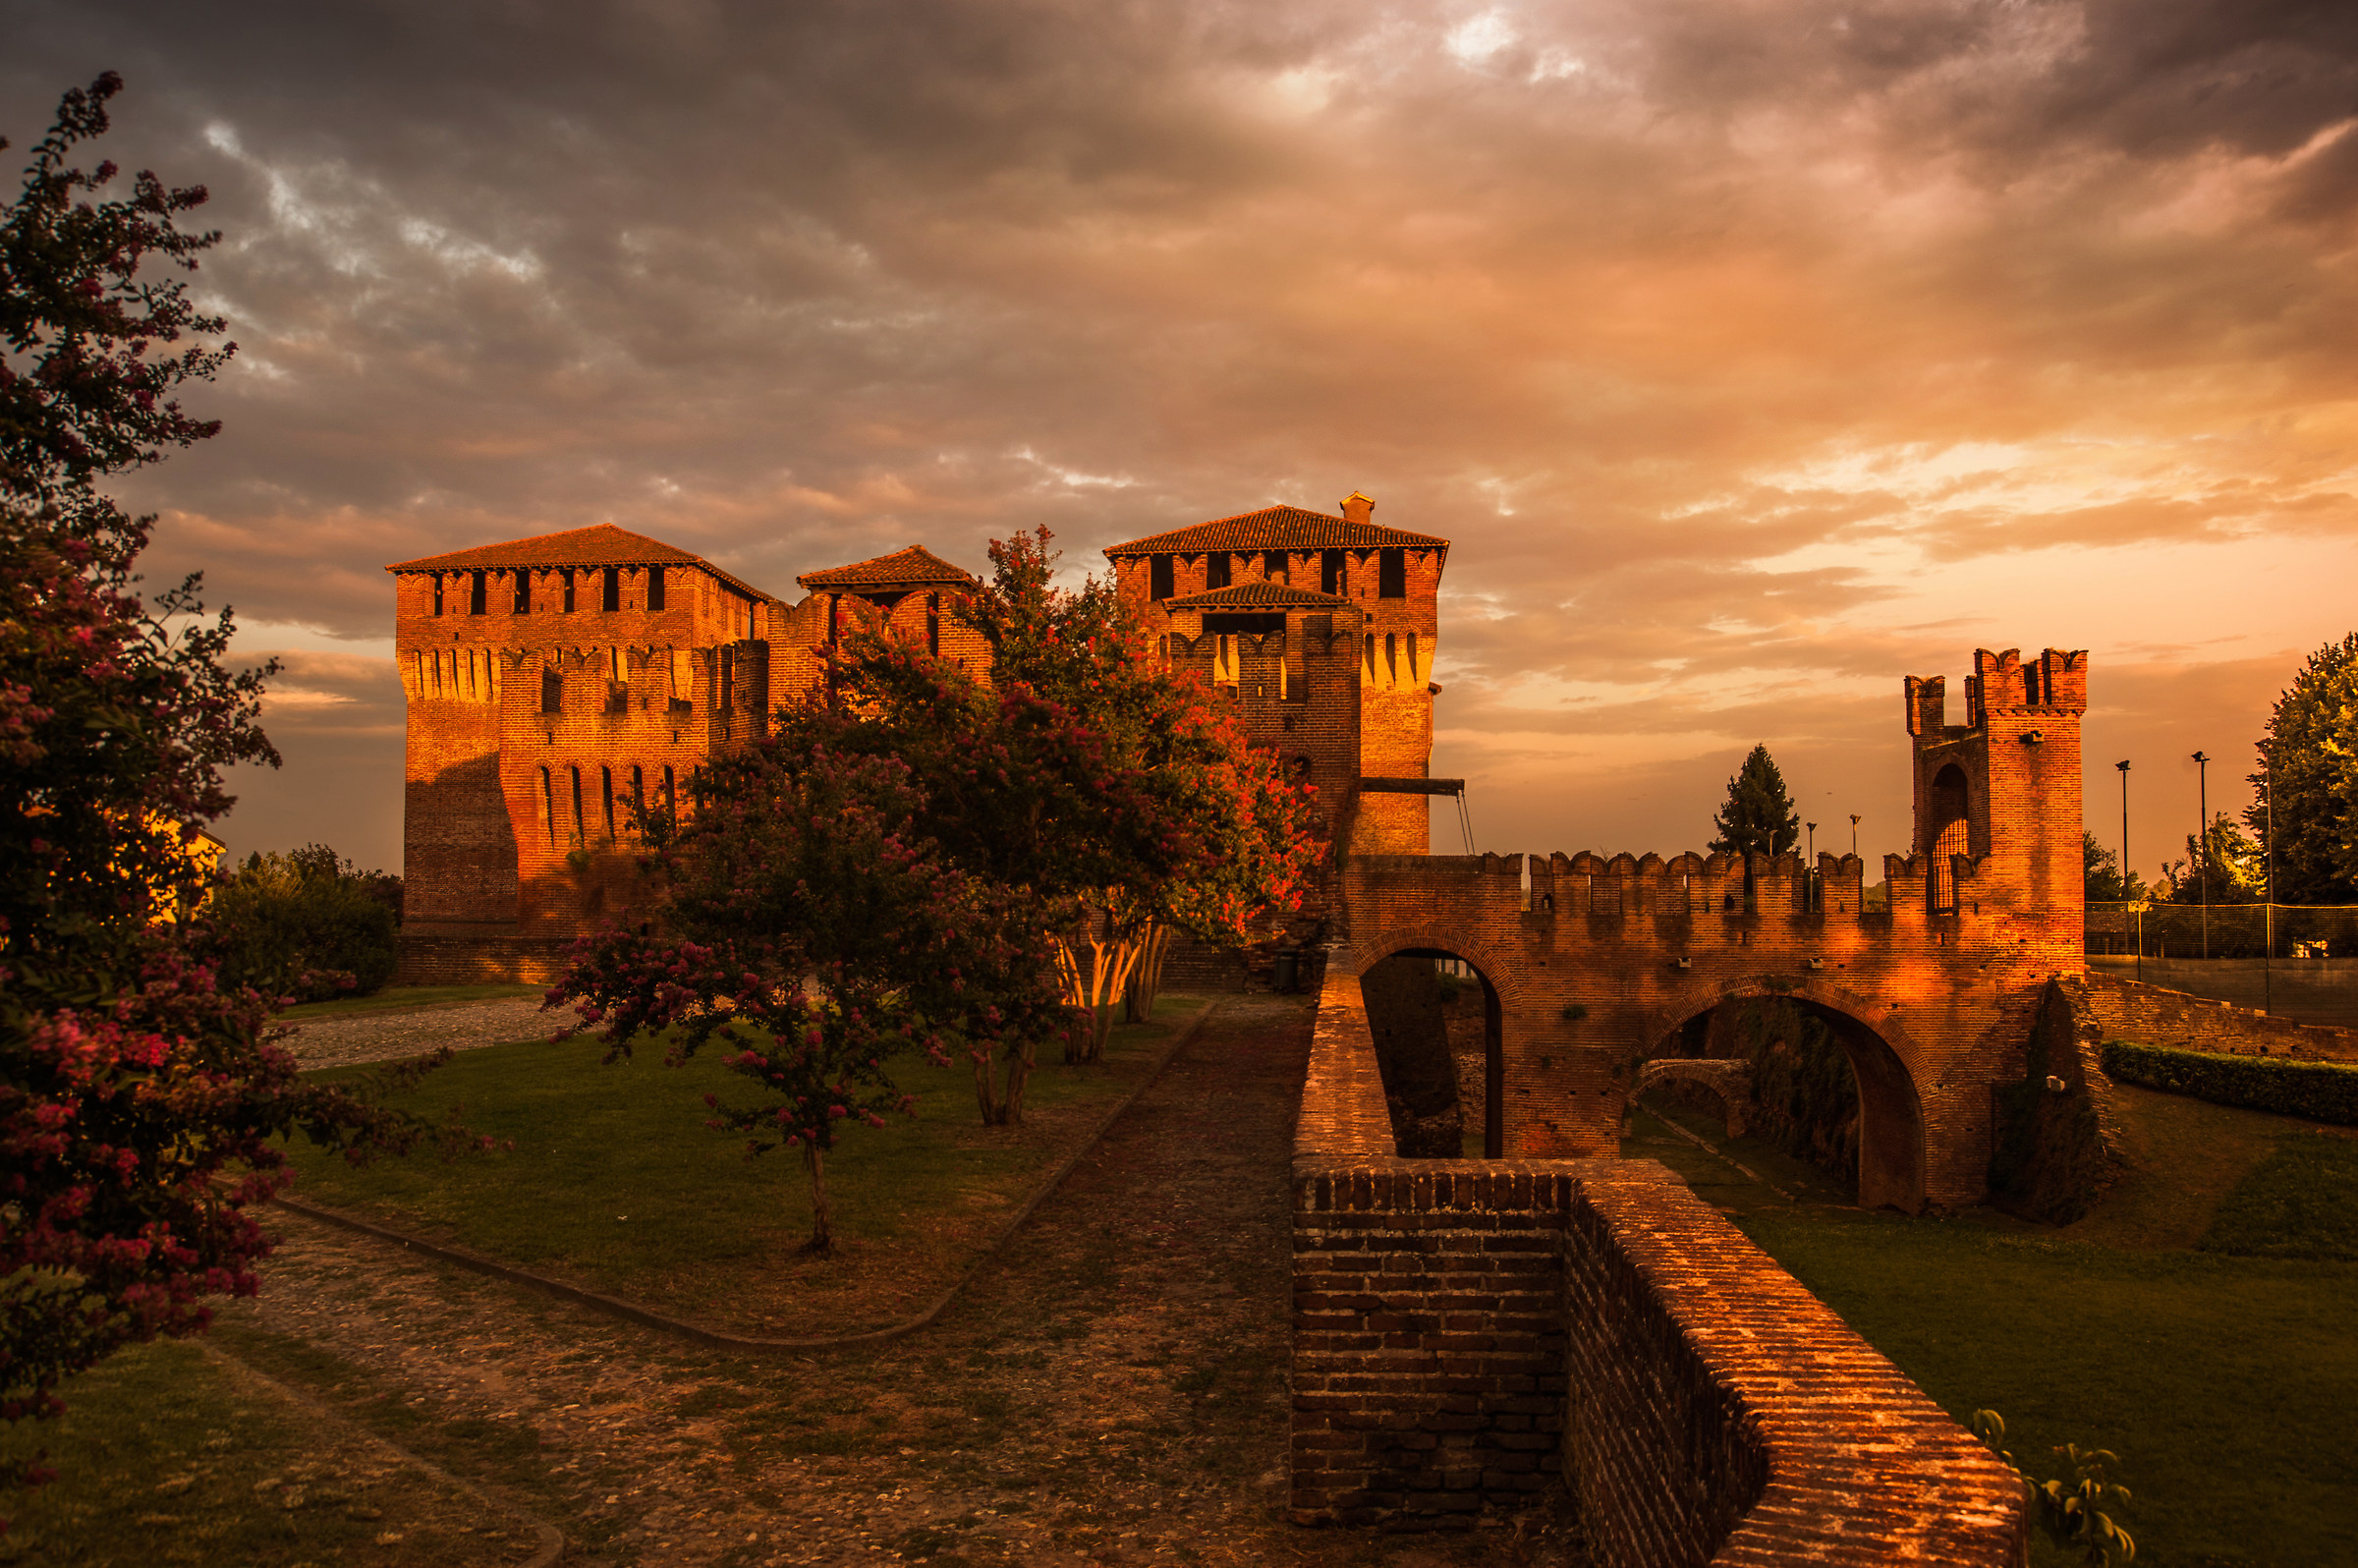 The fortress of Soncino...